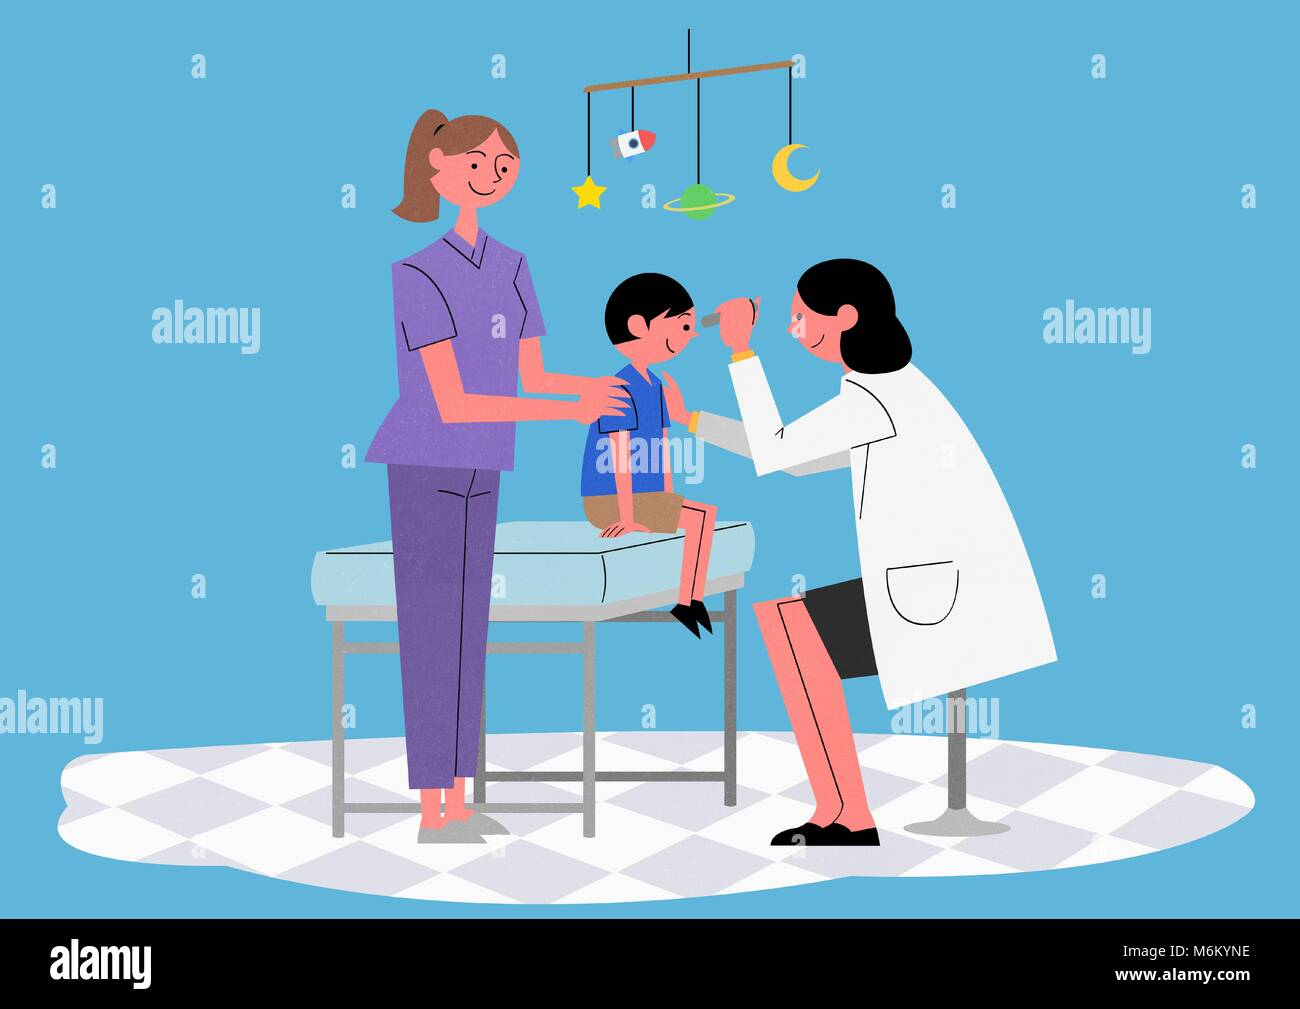 Illustration for a full medical examination, have regular checkups for your health. 008 - Stock Image